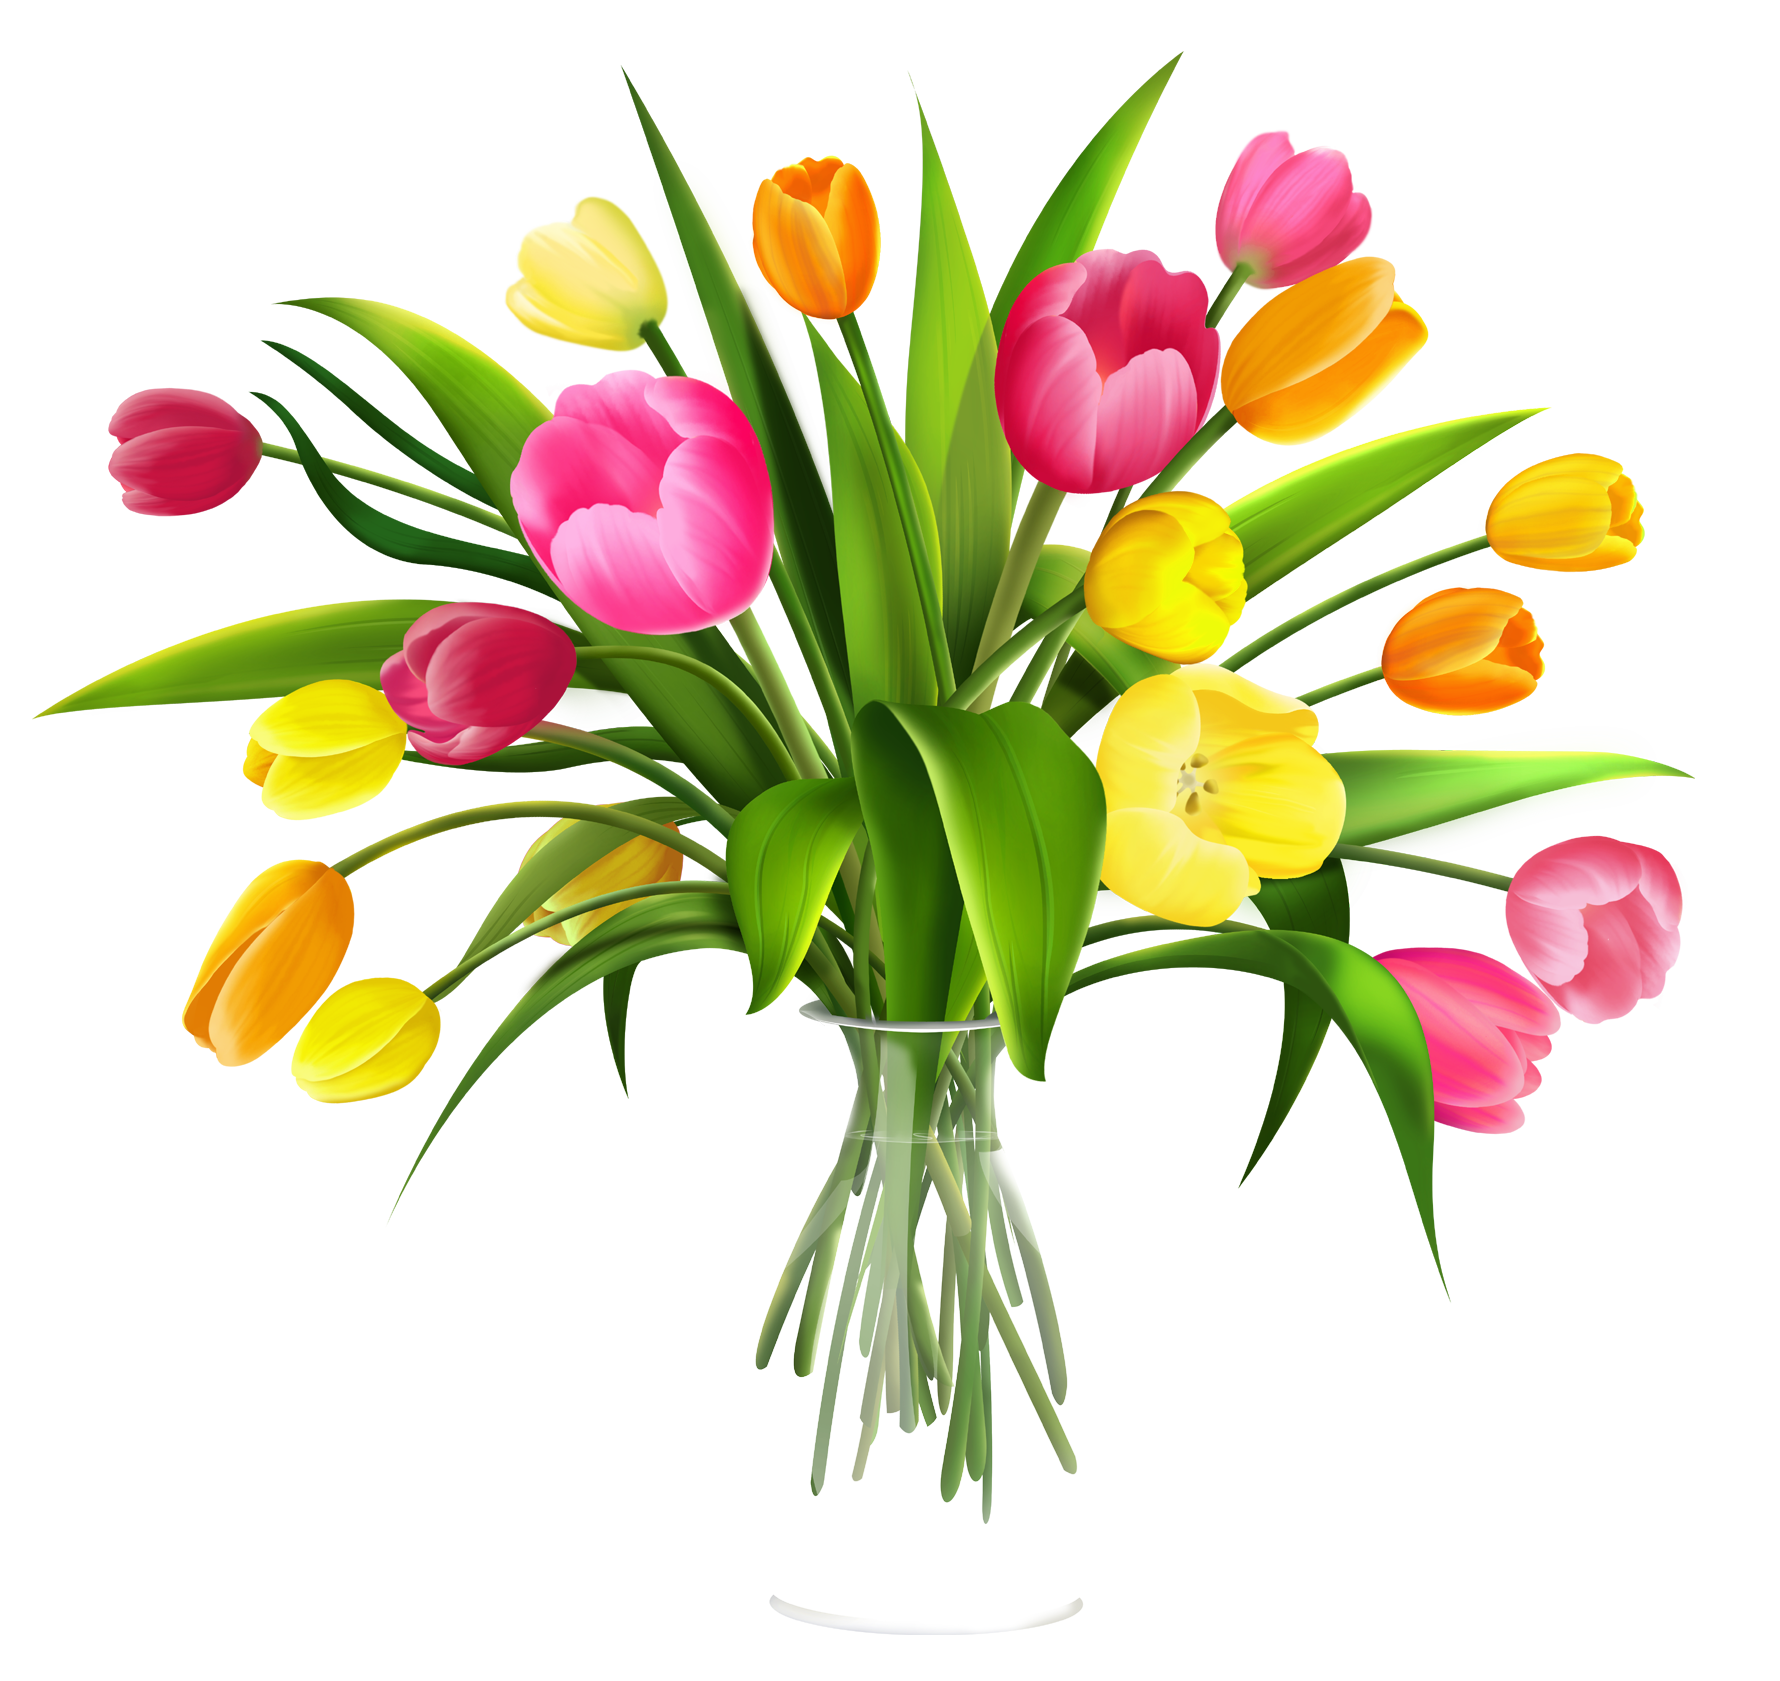 Bouquet Of Flowers In Vase Clip Art.